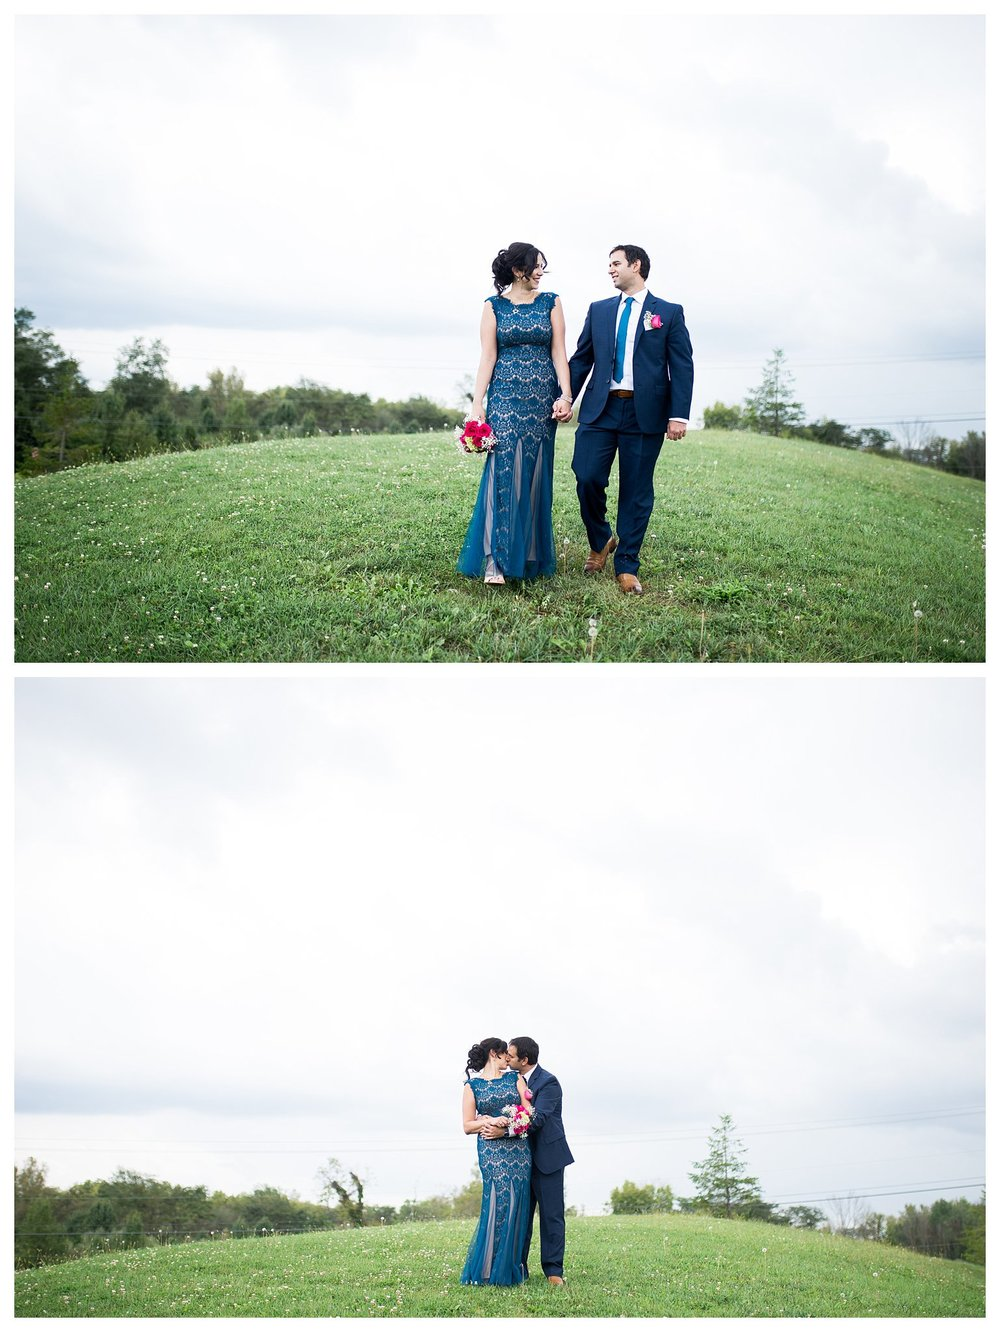 everleigh-photography-cincinnati-wedding-photographer-great-wolf-lodge-elopement-08